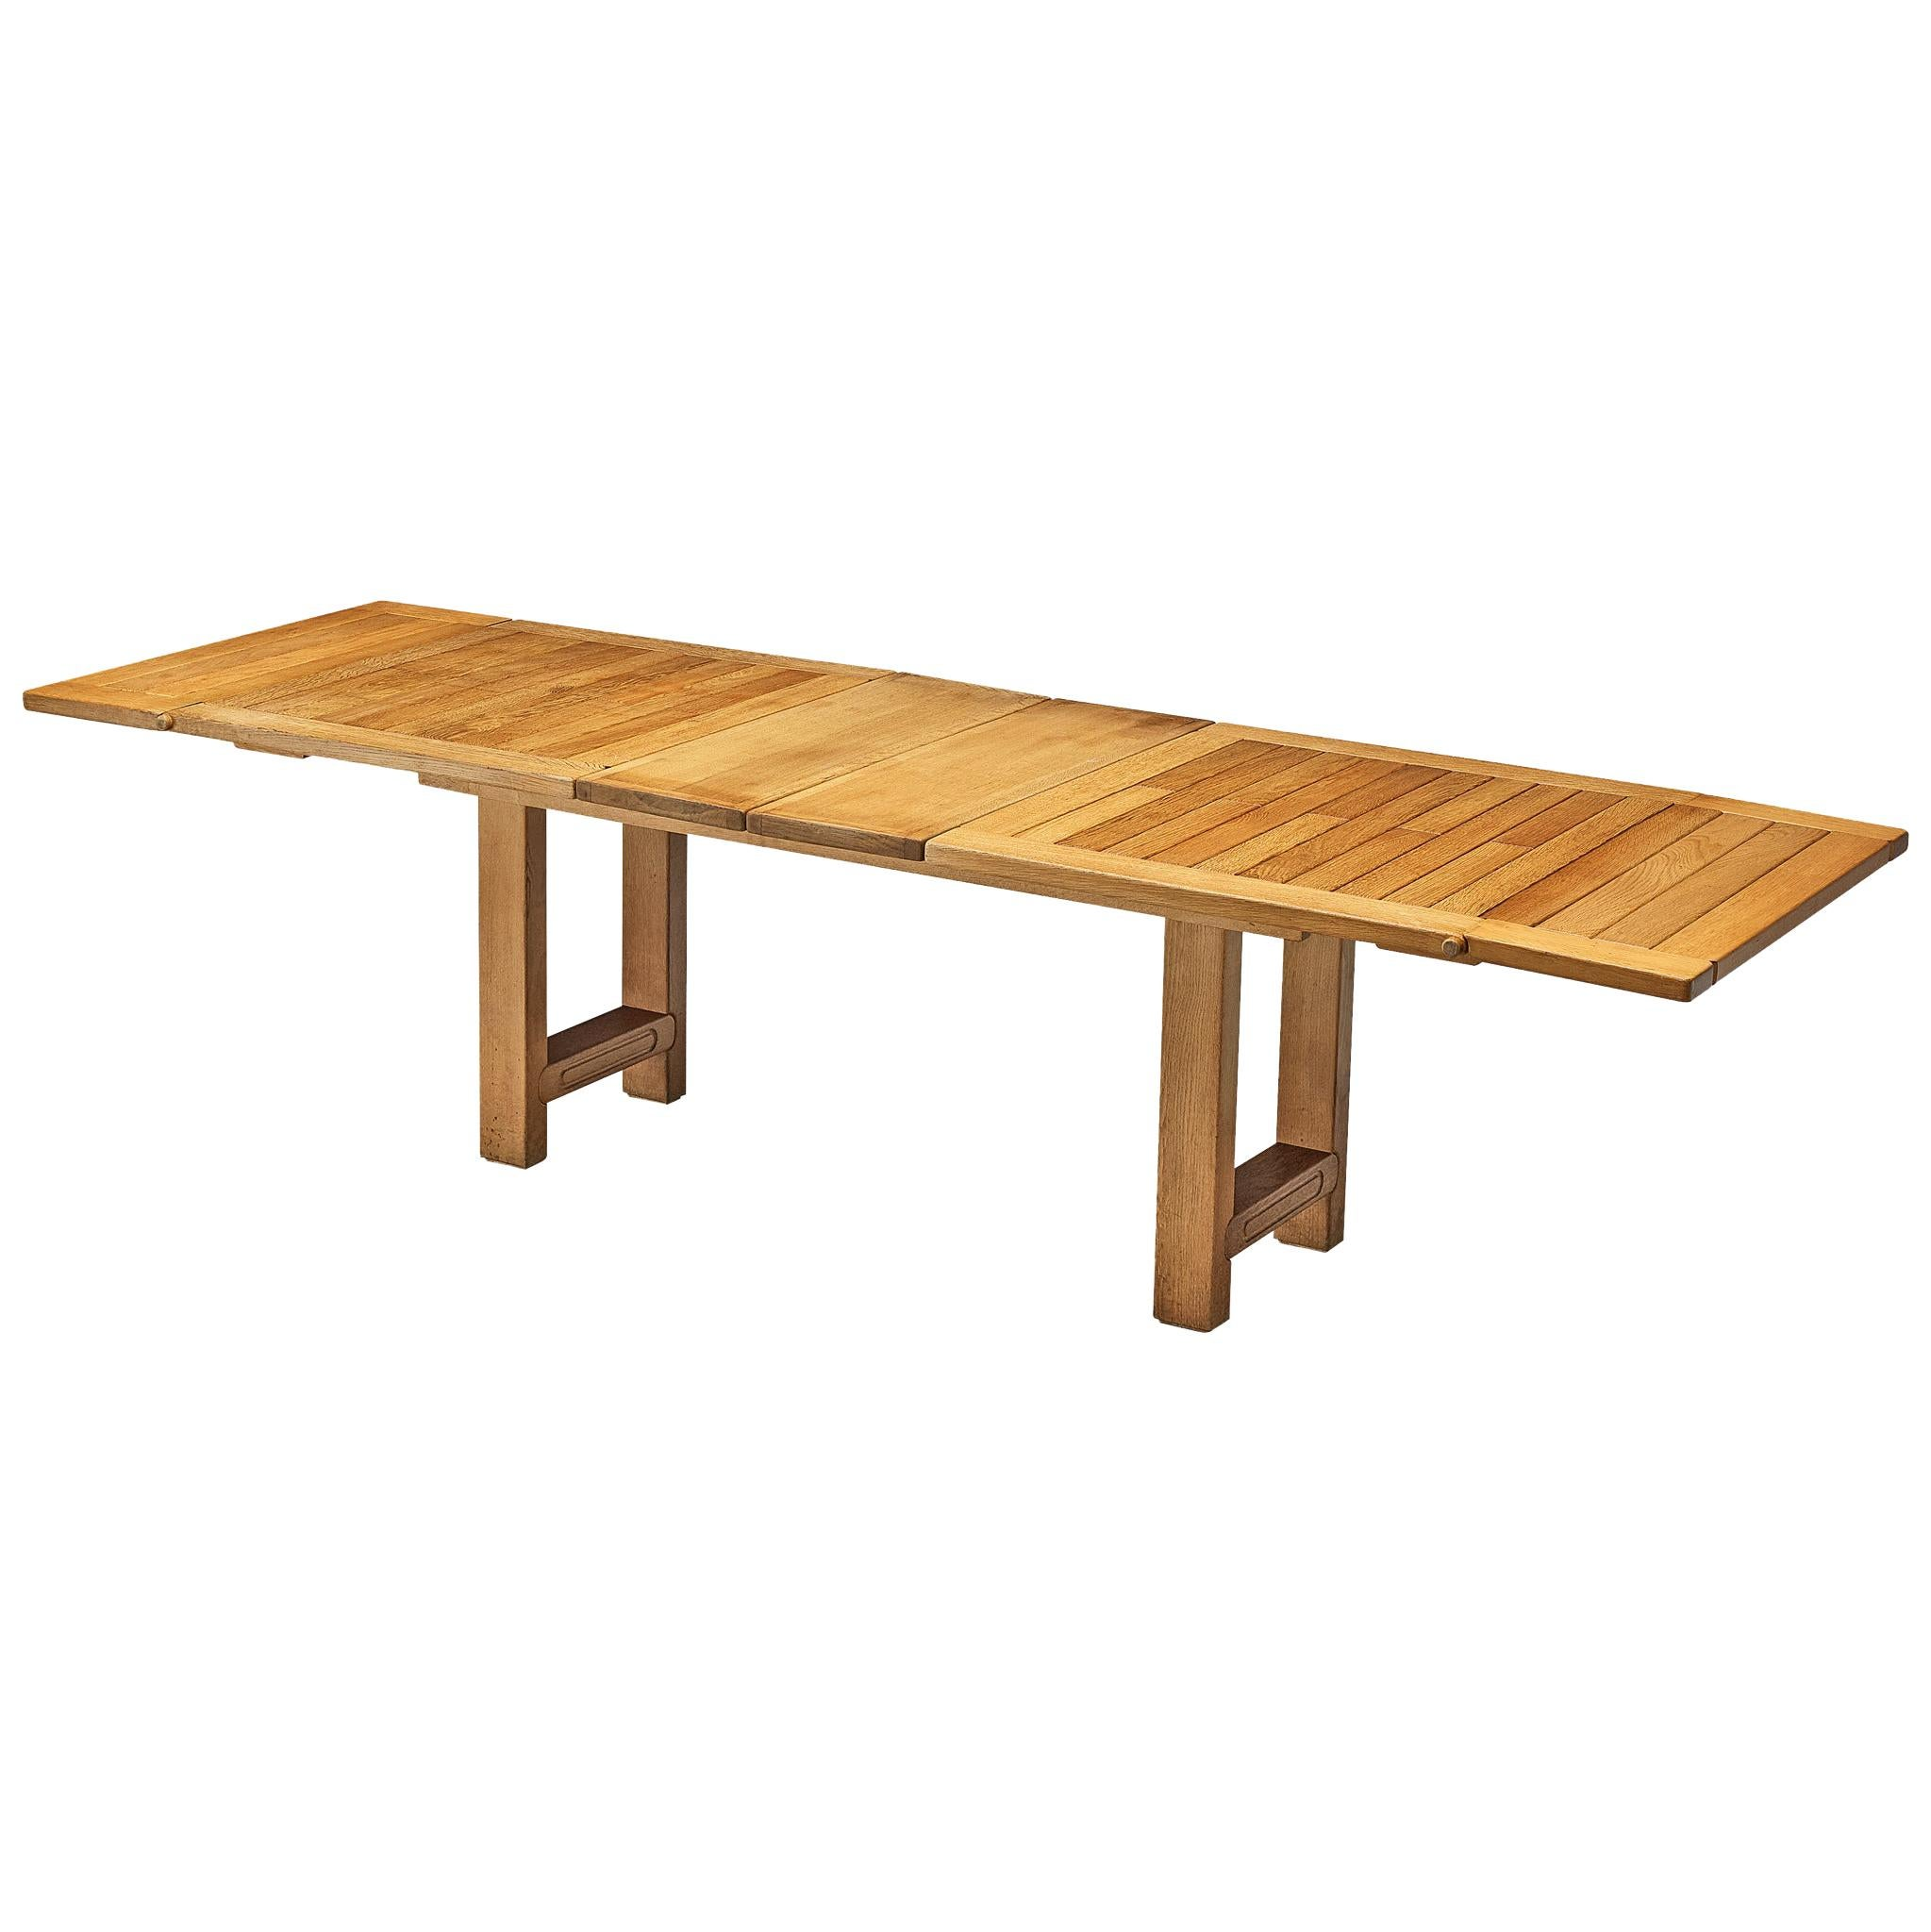 Guillerme et Chambron Extendable Dining Table 'Bourbonnais' in Oak